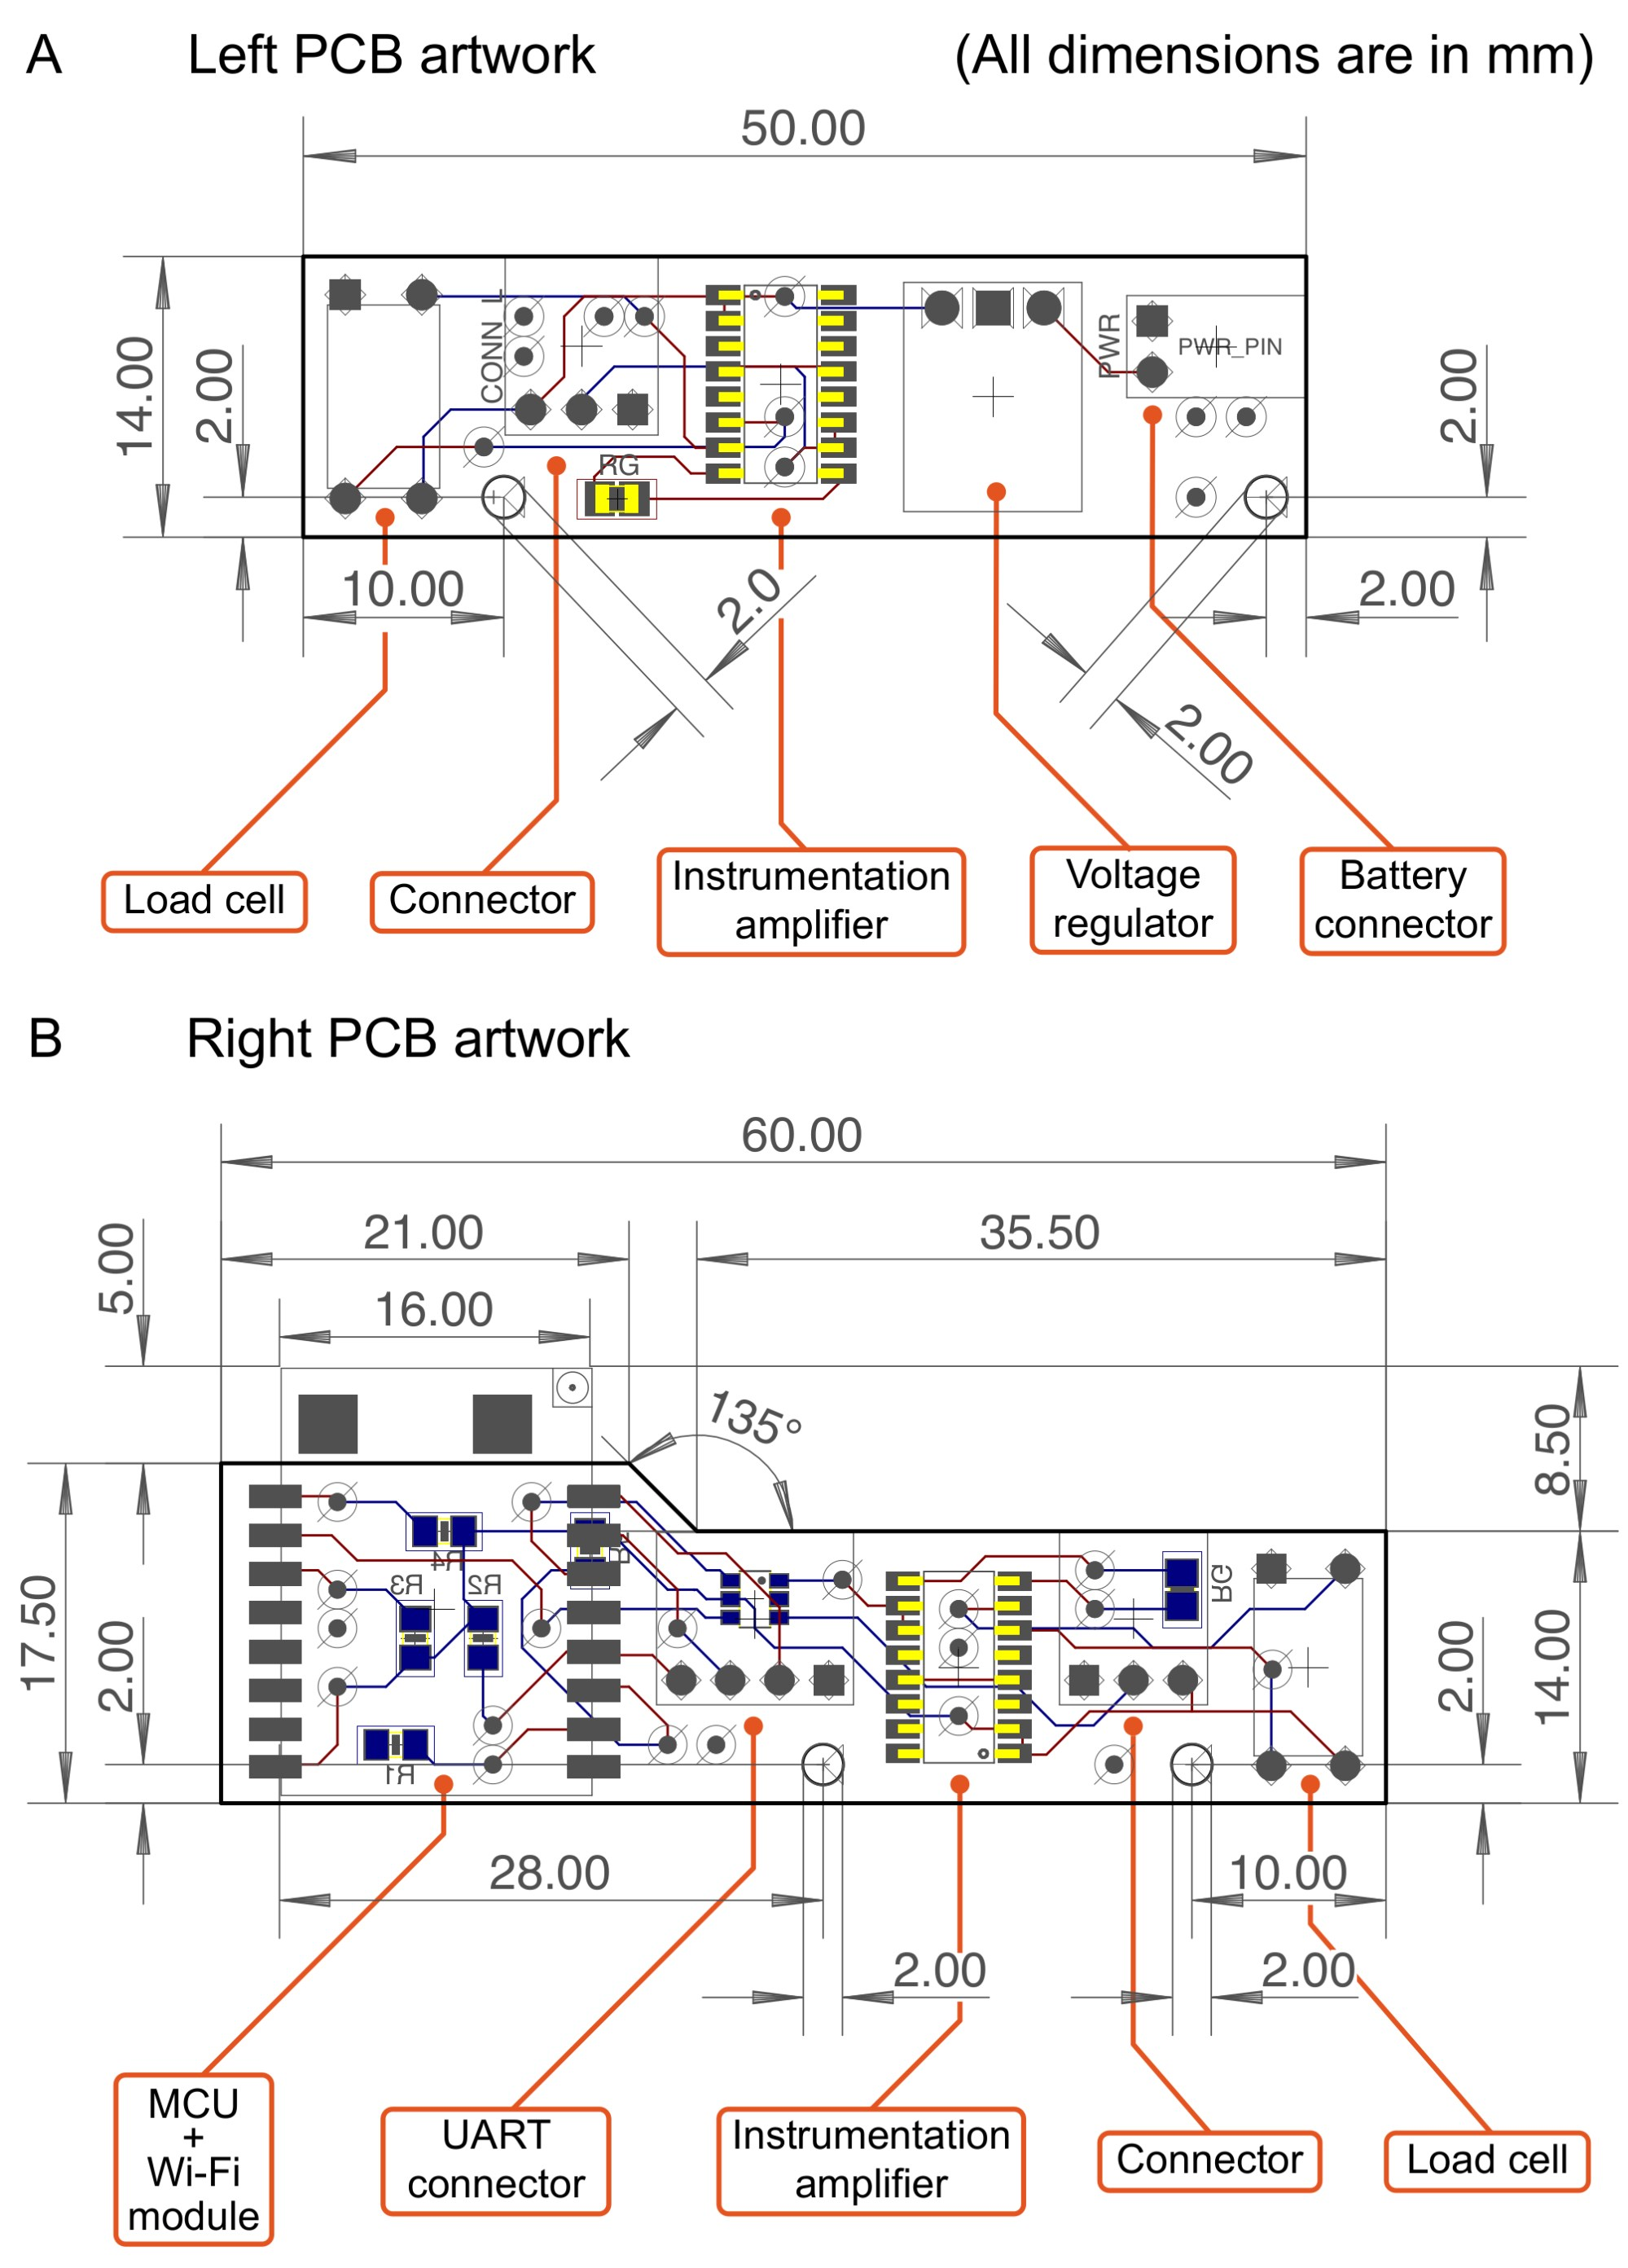 hight resolution of all electronic components are displayed as actual measurements in mm b an artwork of the right pcb